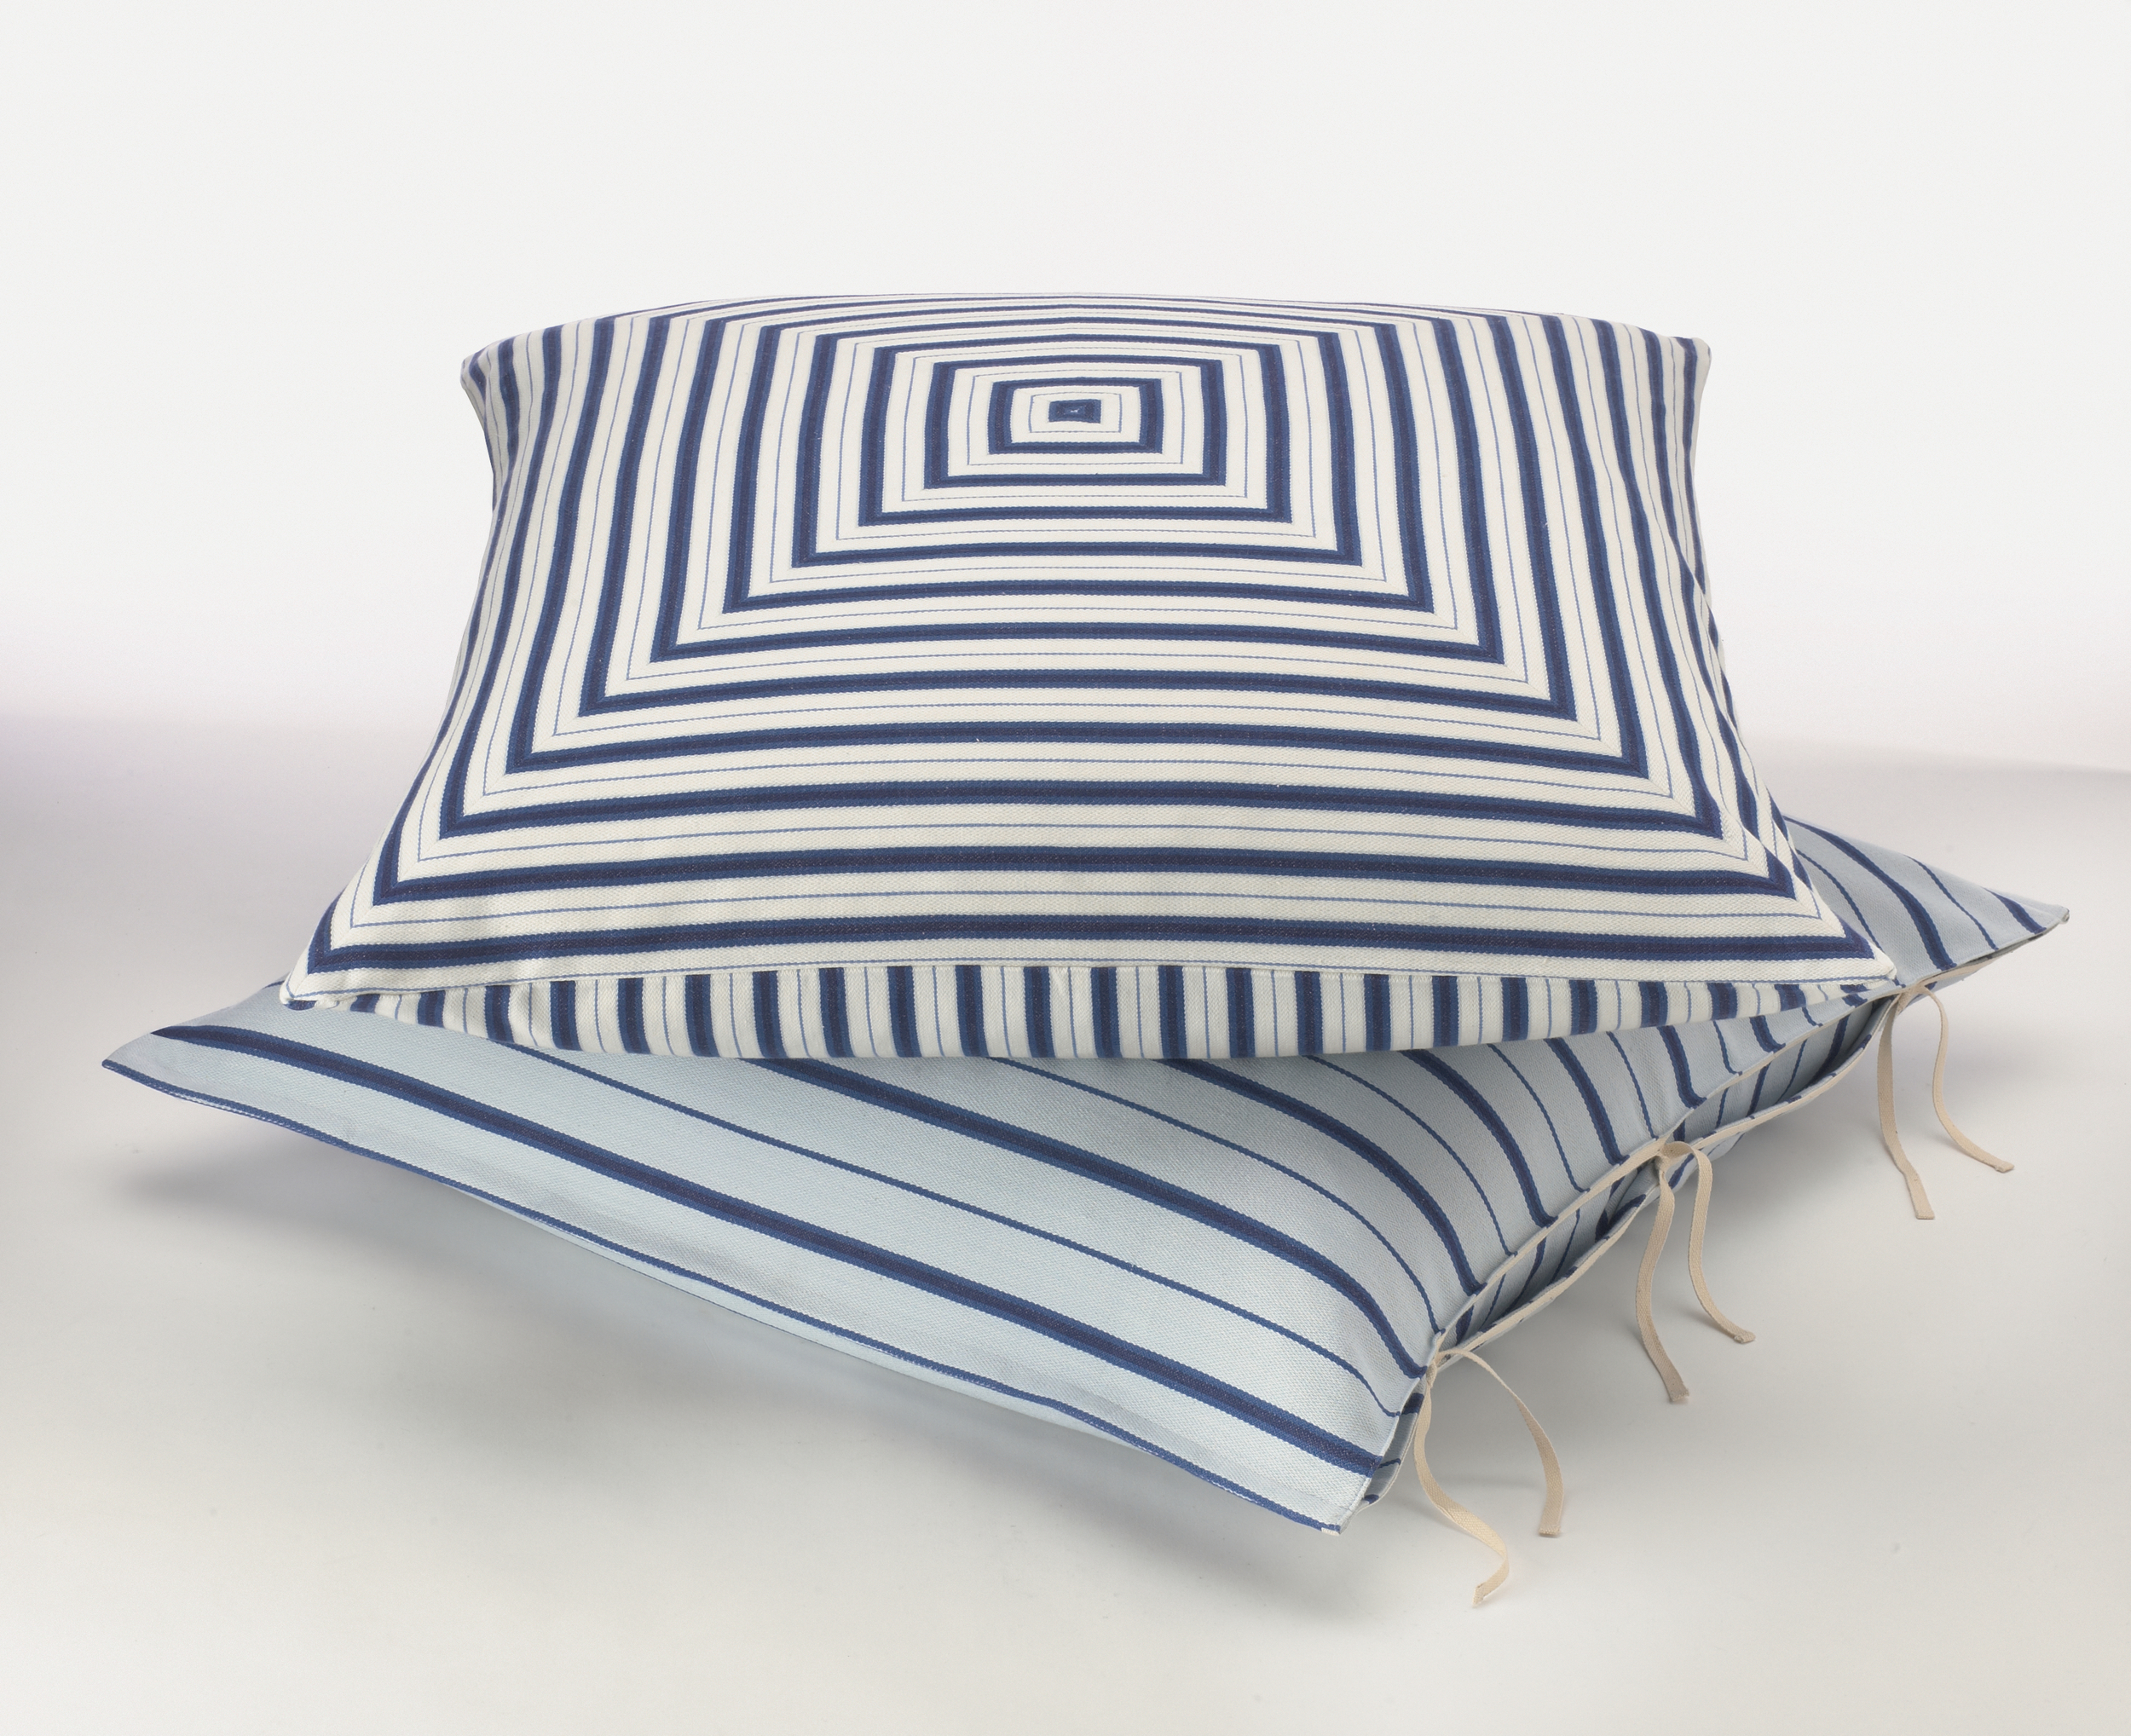 64:65-StripePillows.jpg